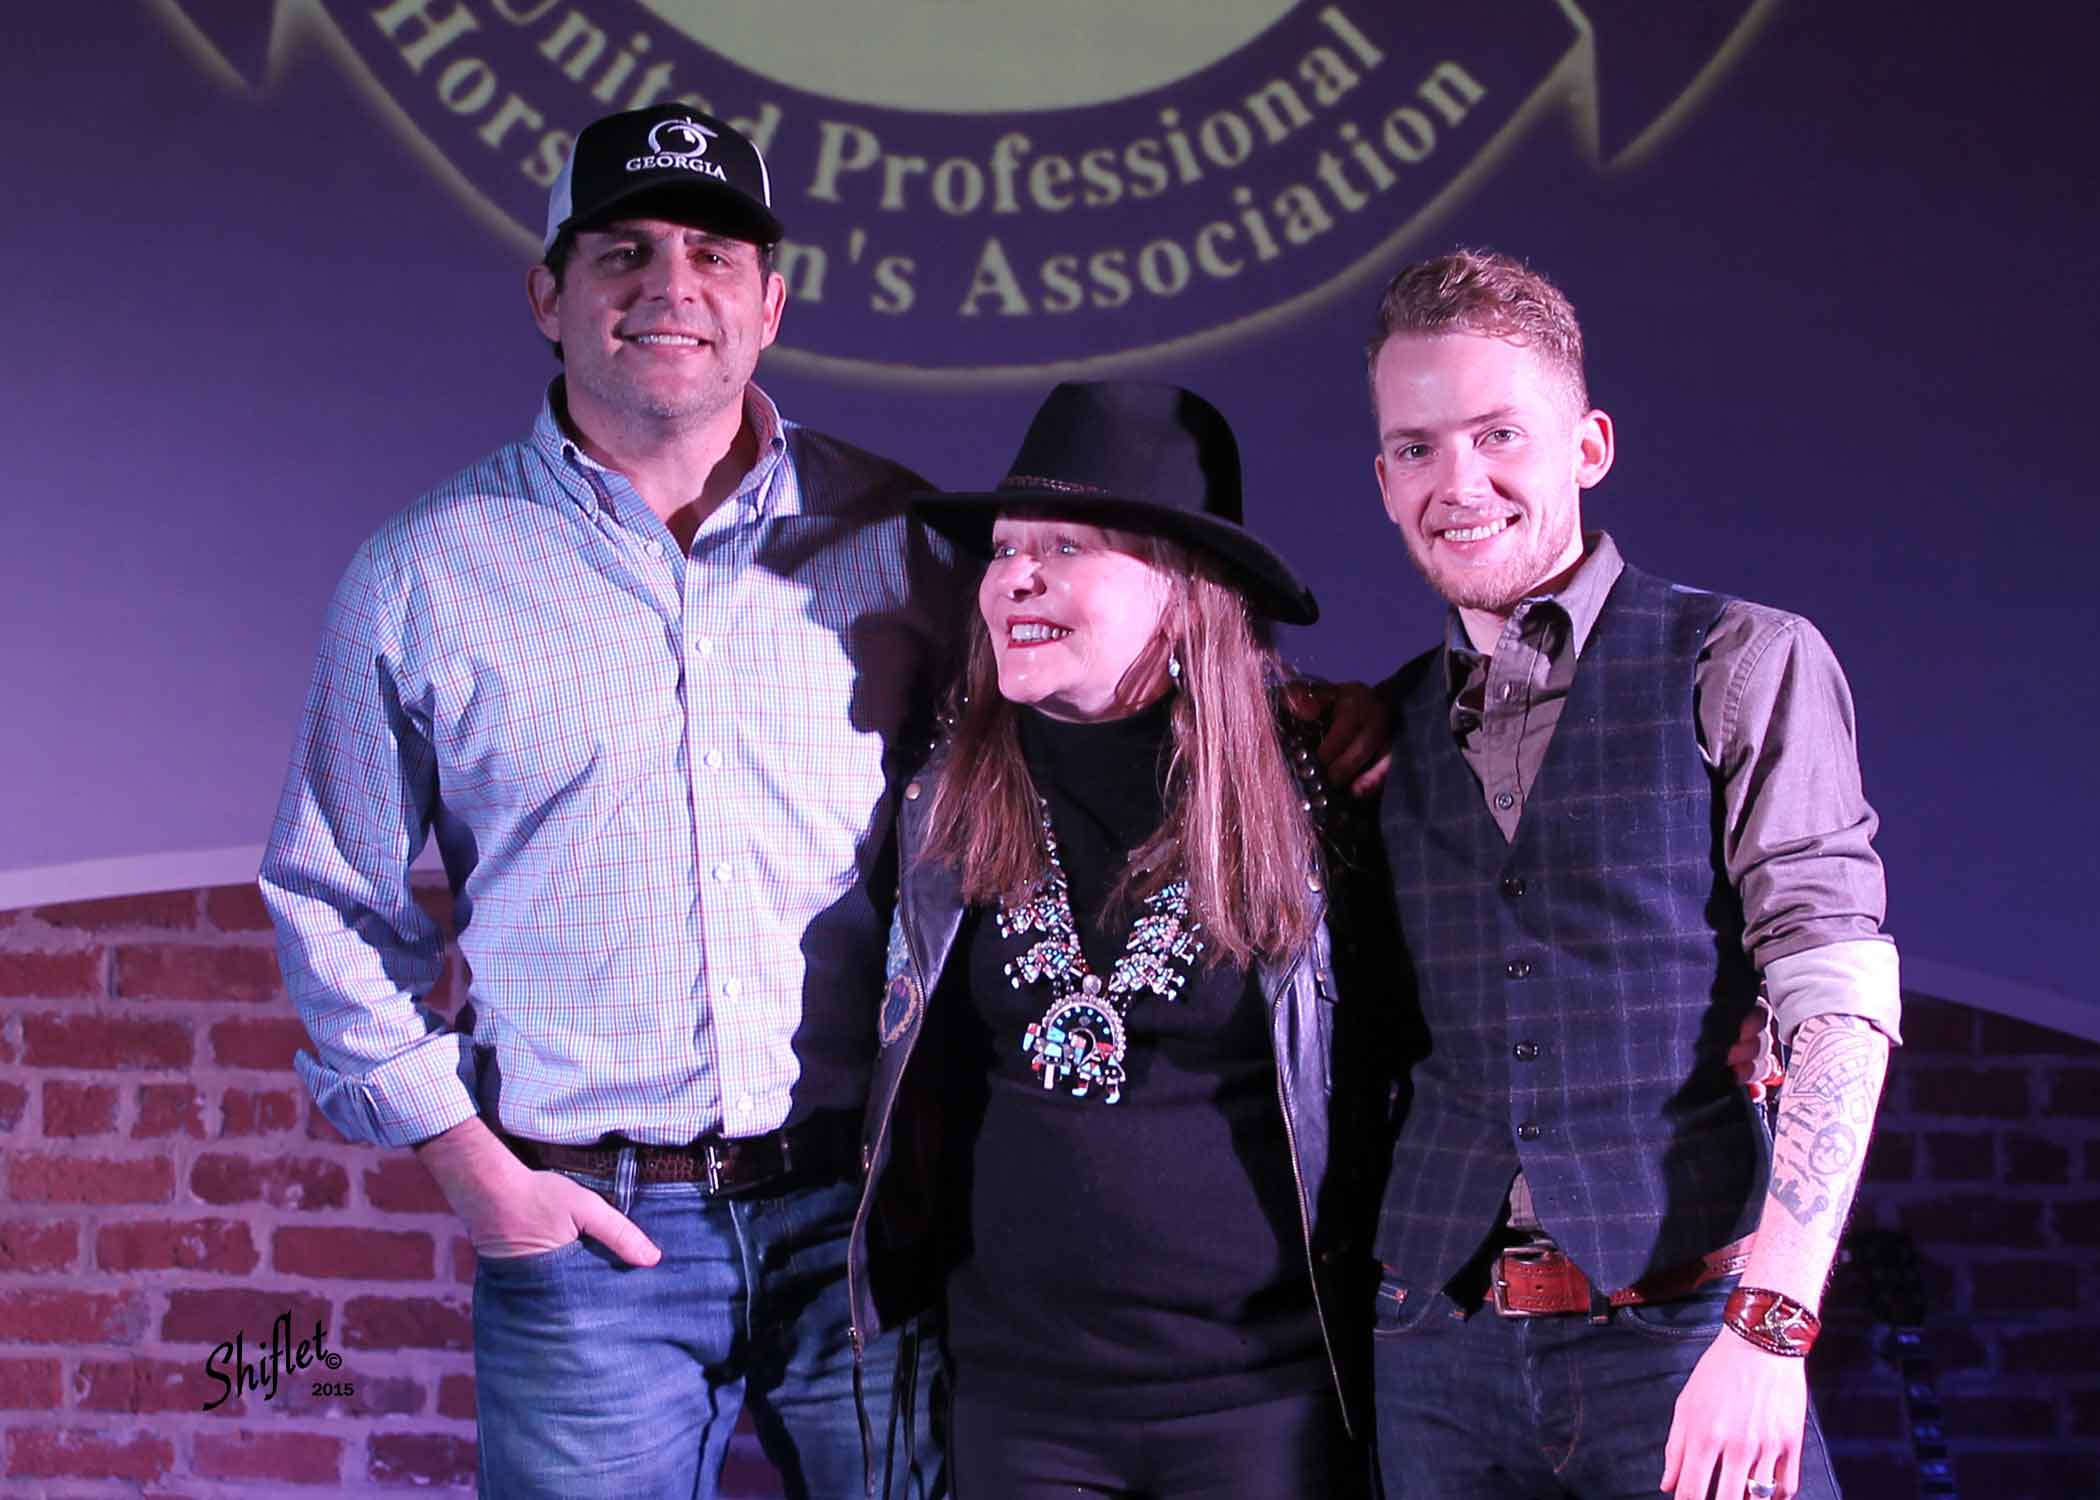 The Convention kicked off Thursday night with an amazing party hosted by Helen Rich and featuring Rhett  Akins and Taylor Phelam